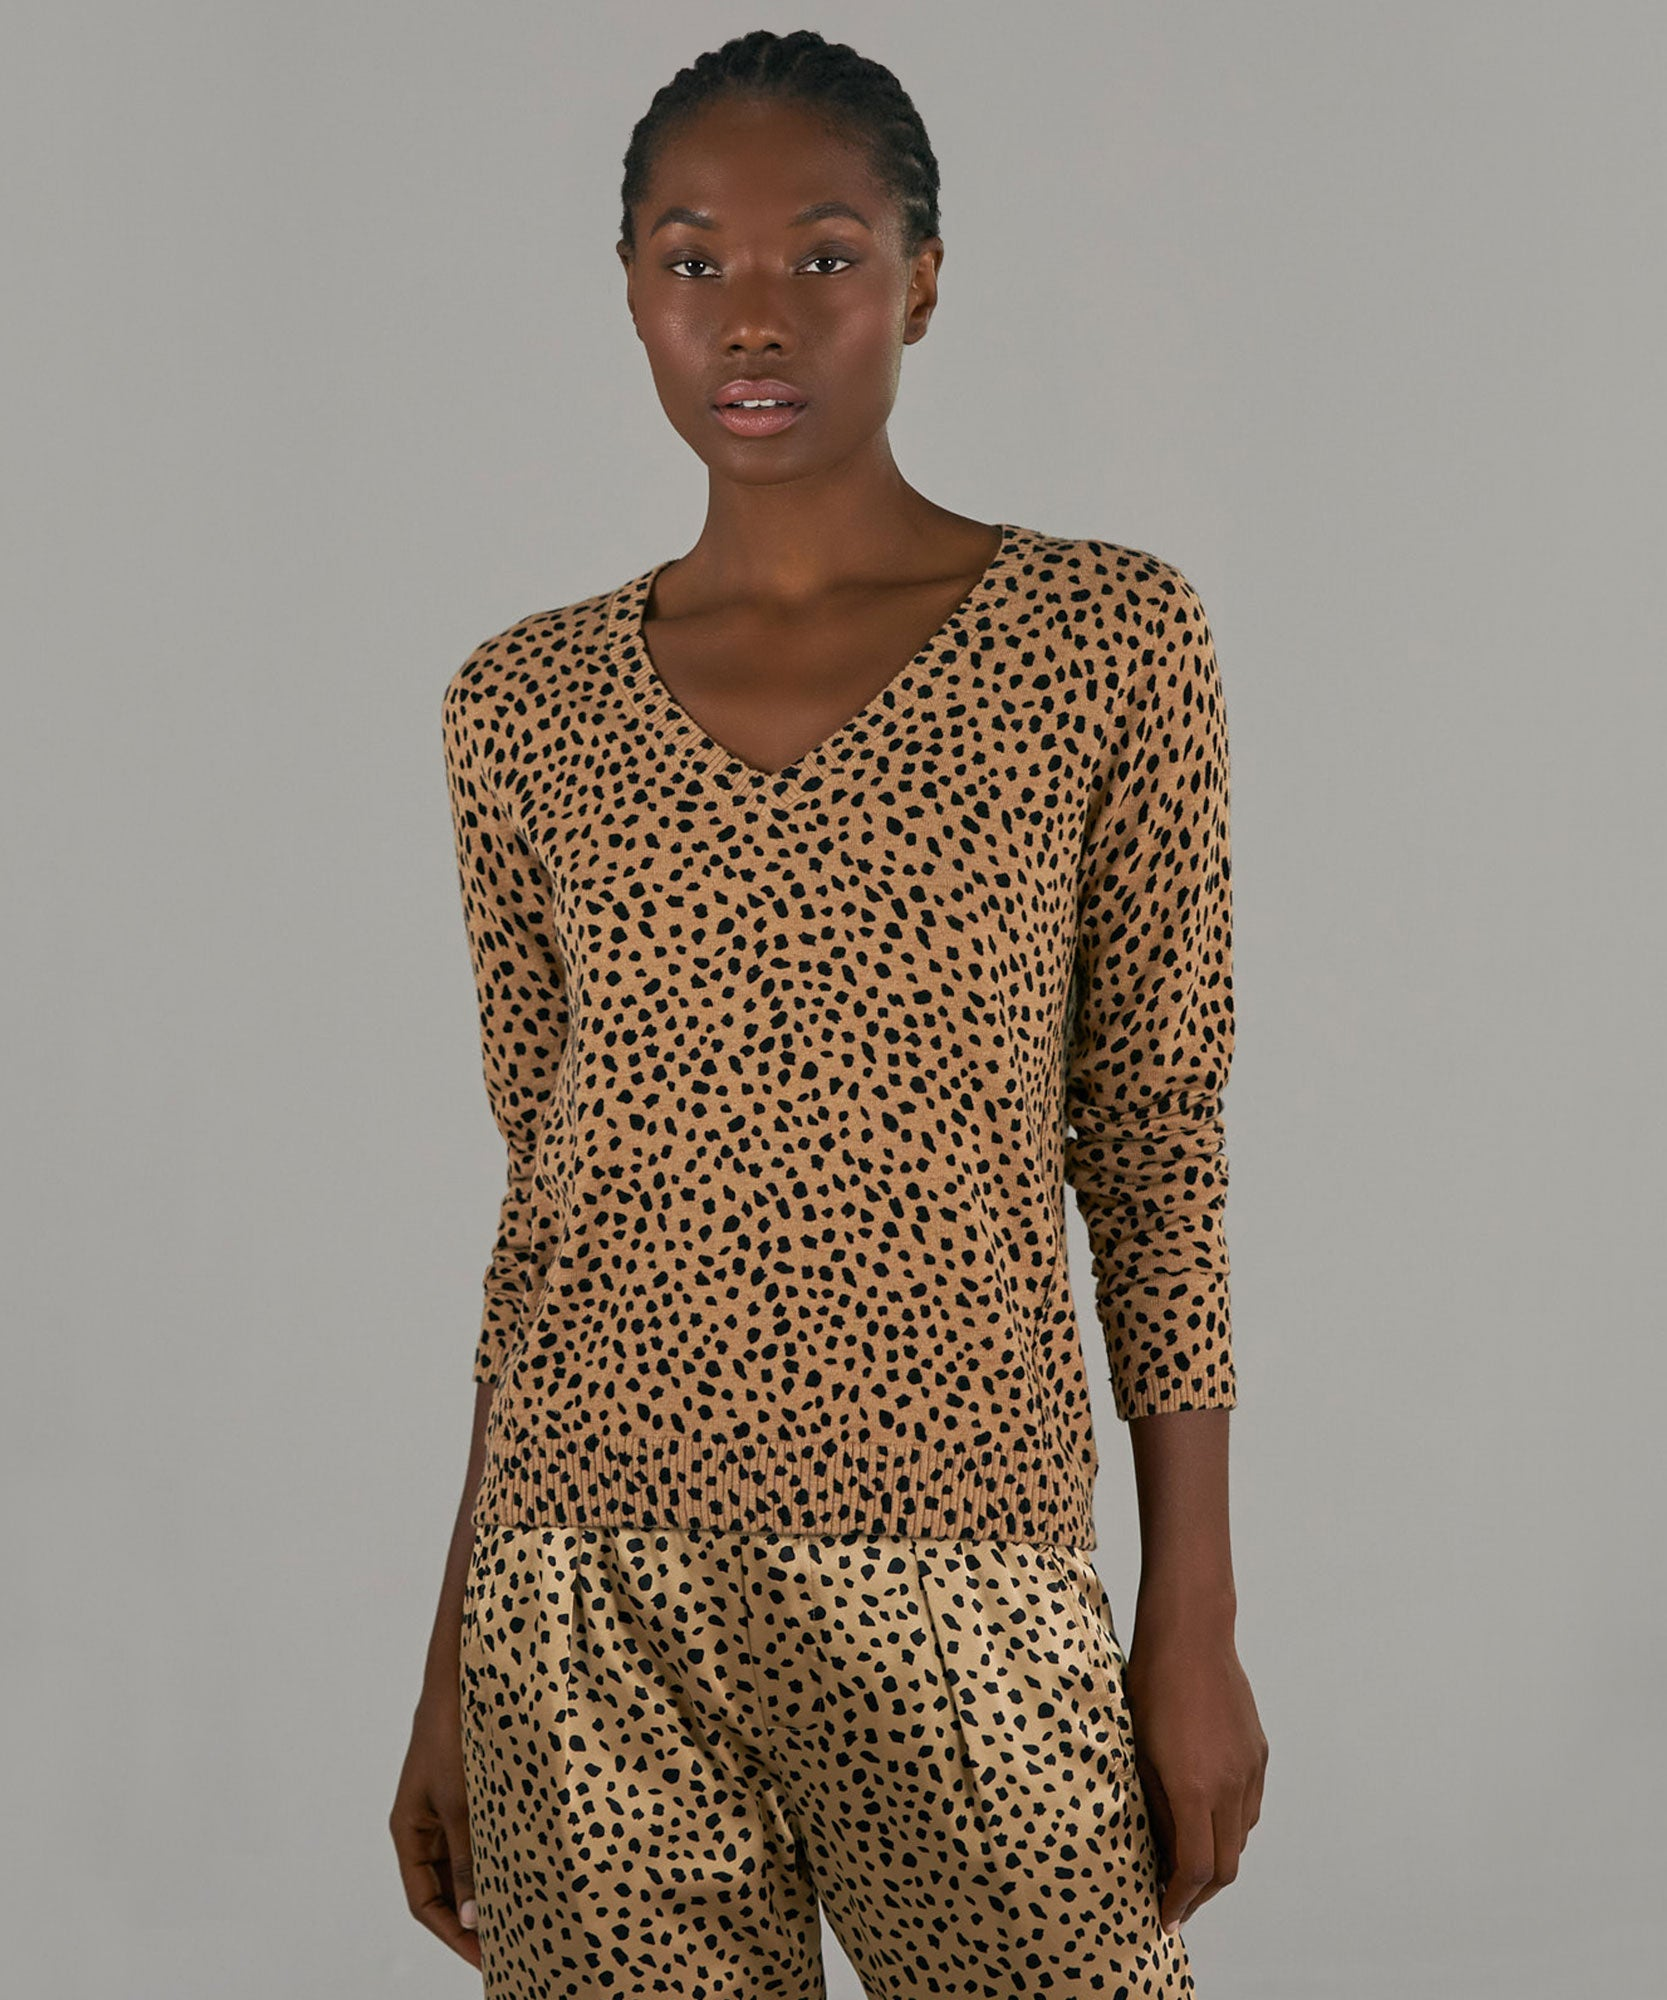 Camel and Black Cheetah Print Cotton Cashmere V-Neck Sweater - Women's Luxe Sweater by ATM Anthony Thomas Melillo